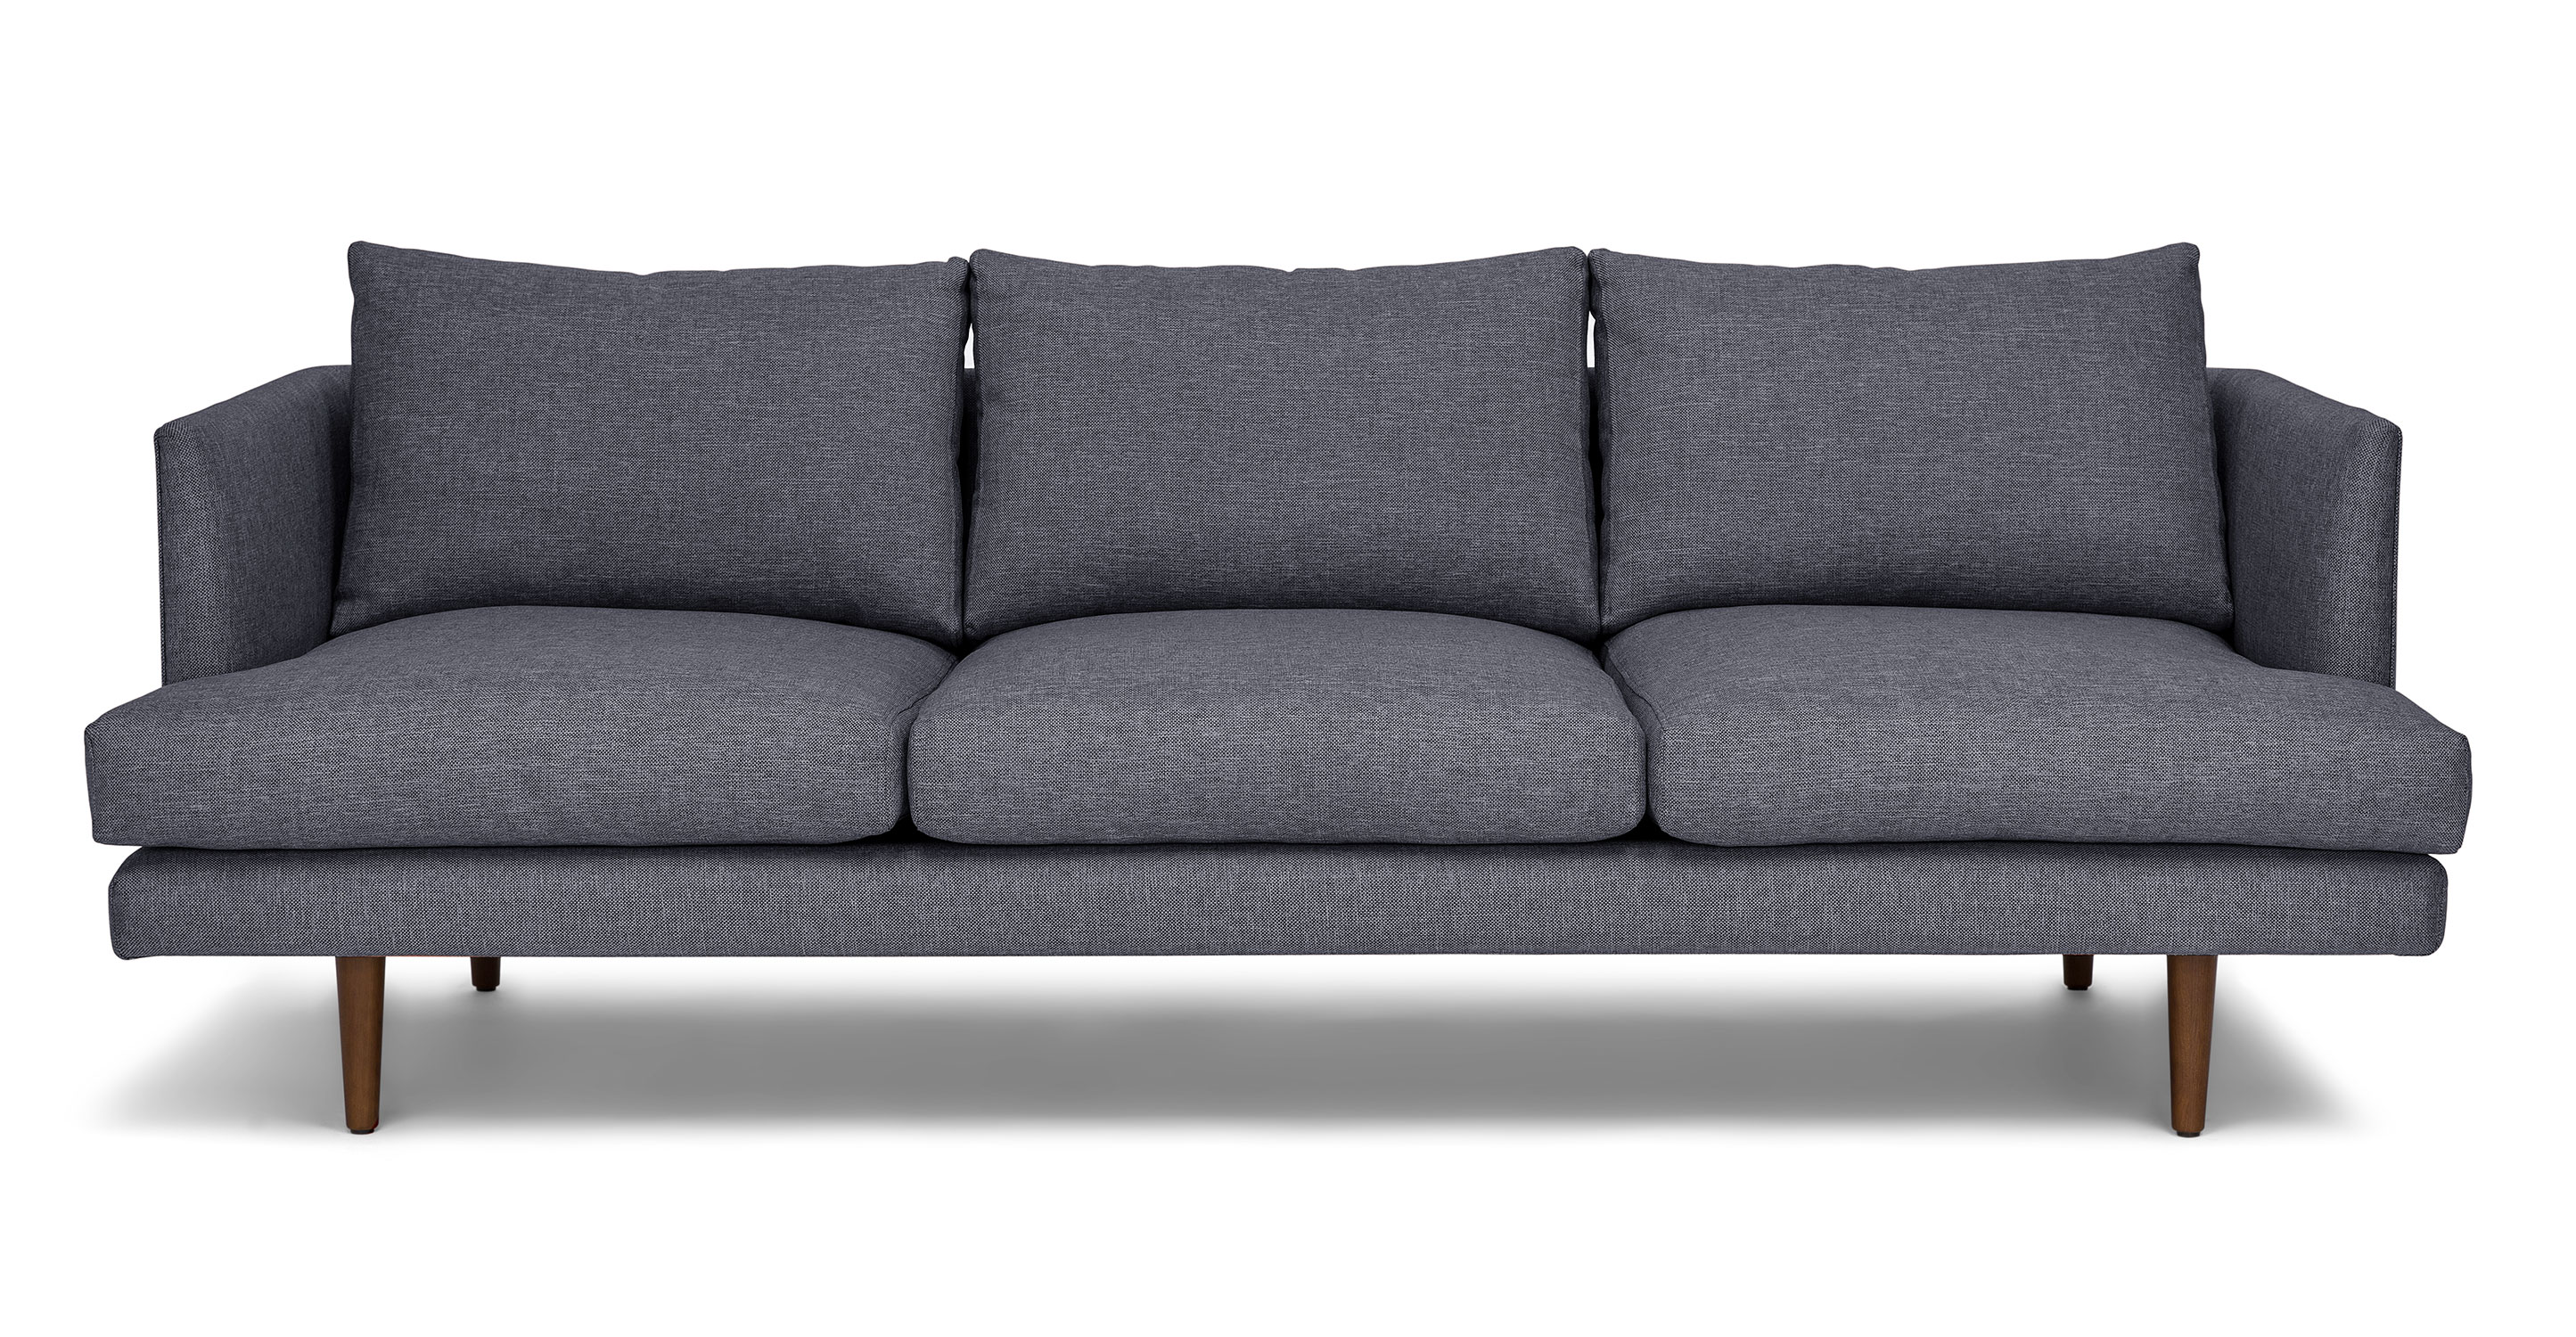 Couch Cover Sofa Blue Fabric Sofa 3 Seater Solid Wood Legs Article Burrard Modern Furniture